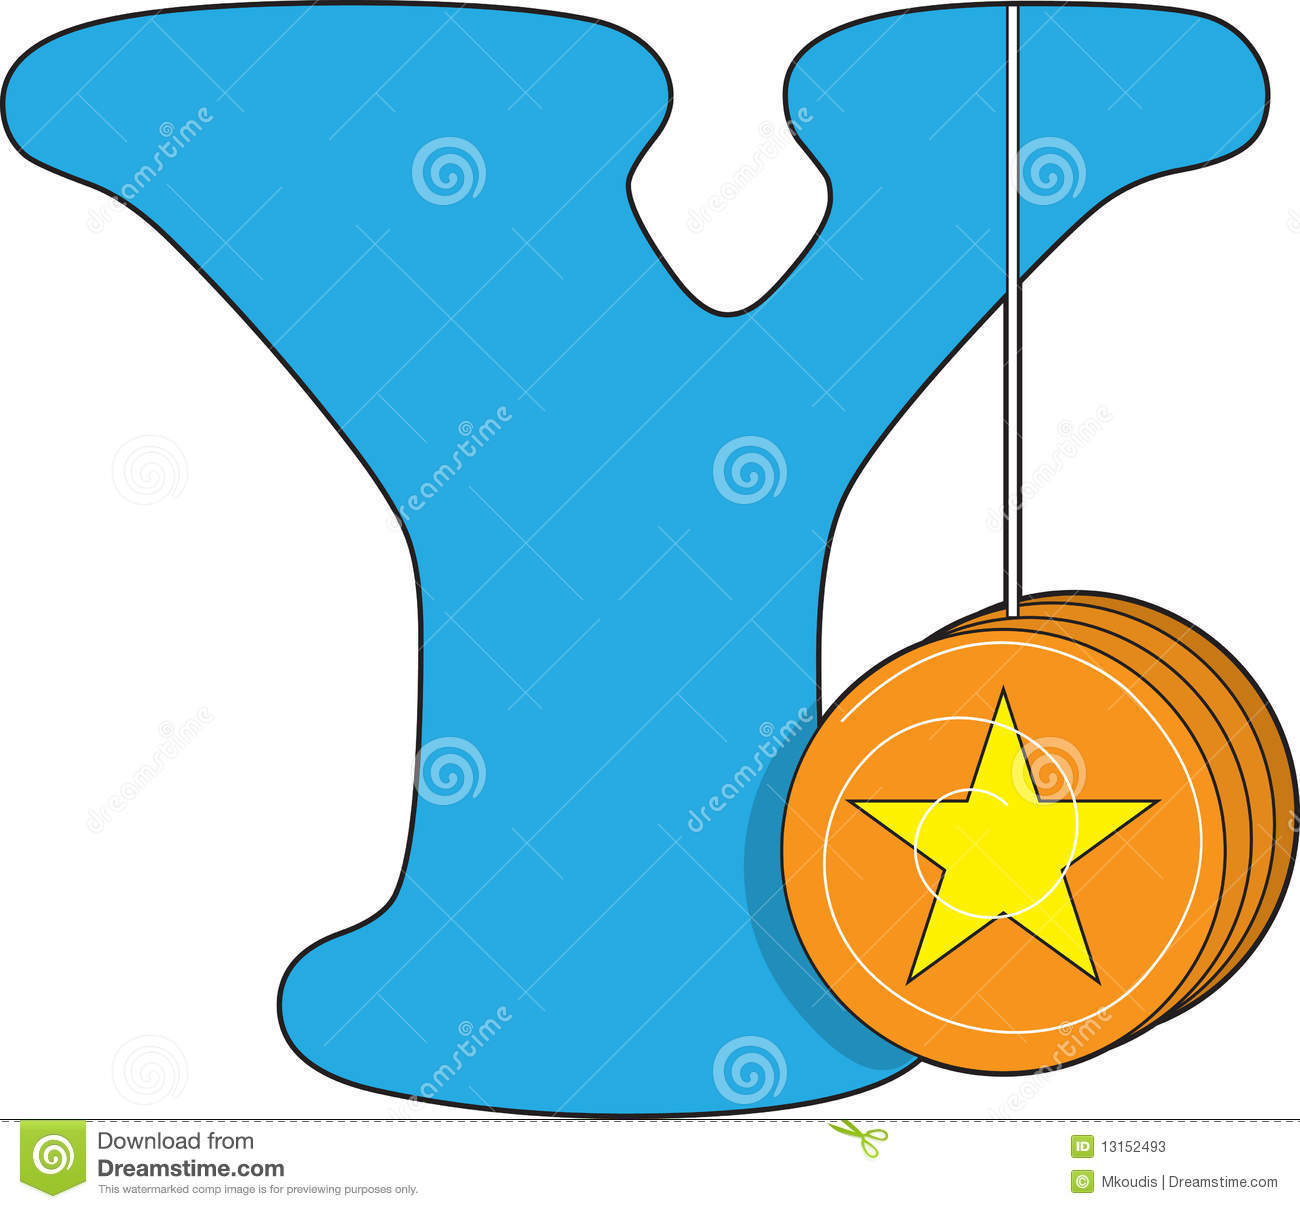 letter y yoyo stock illustrations – 23 letter y yoyo stock